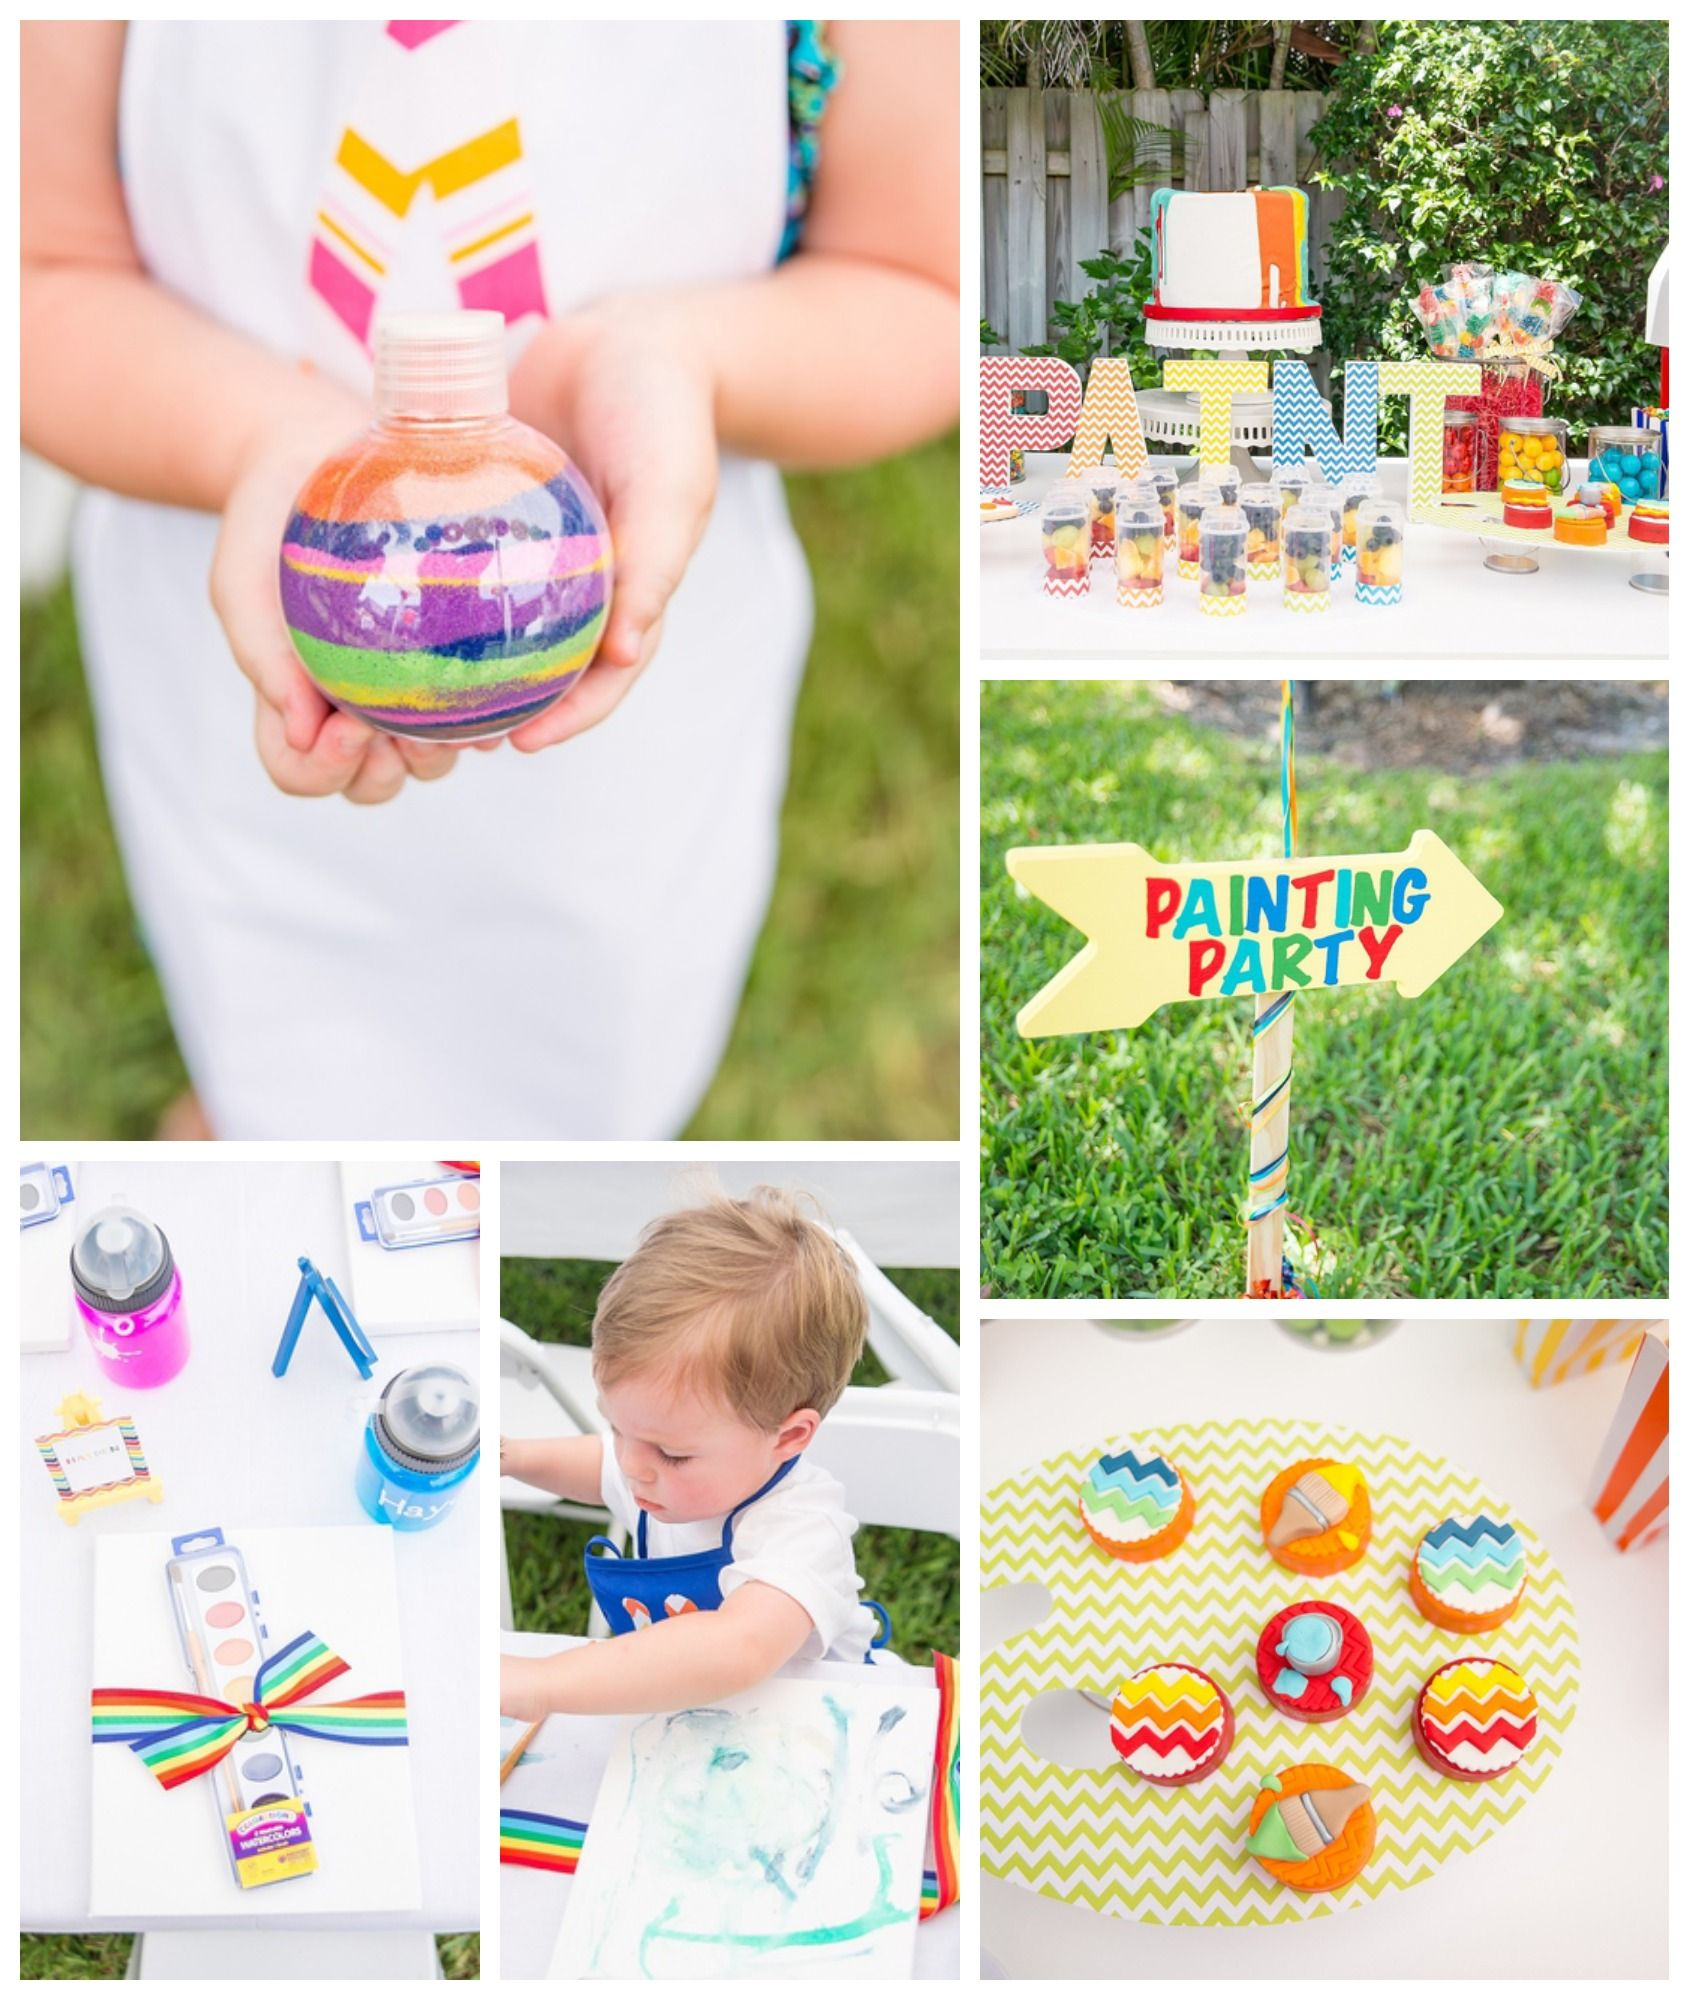 Arts and crafts party ideas - Arts Crafts Is A Great Party Theme For A Boy Birthday Fun Birthday Cake